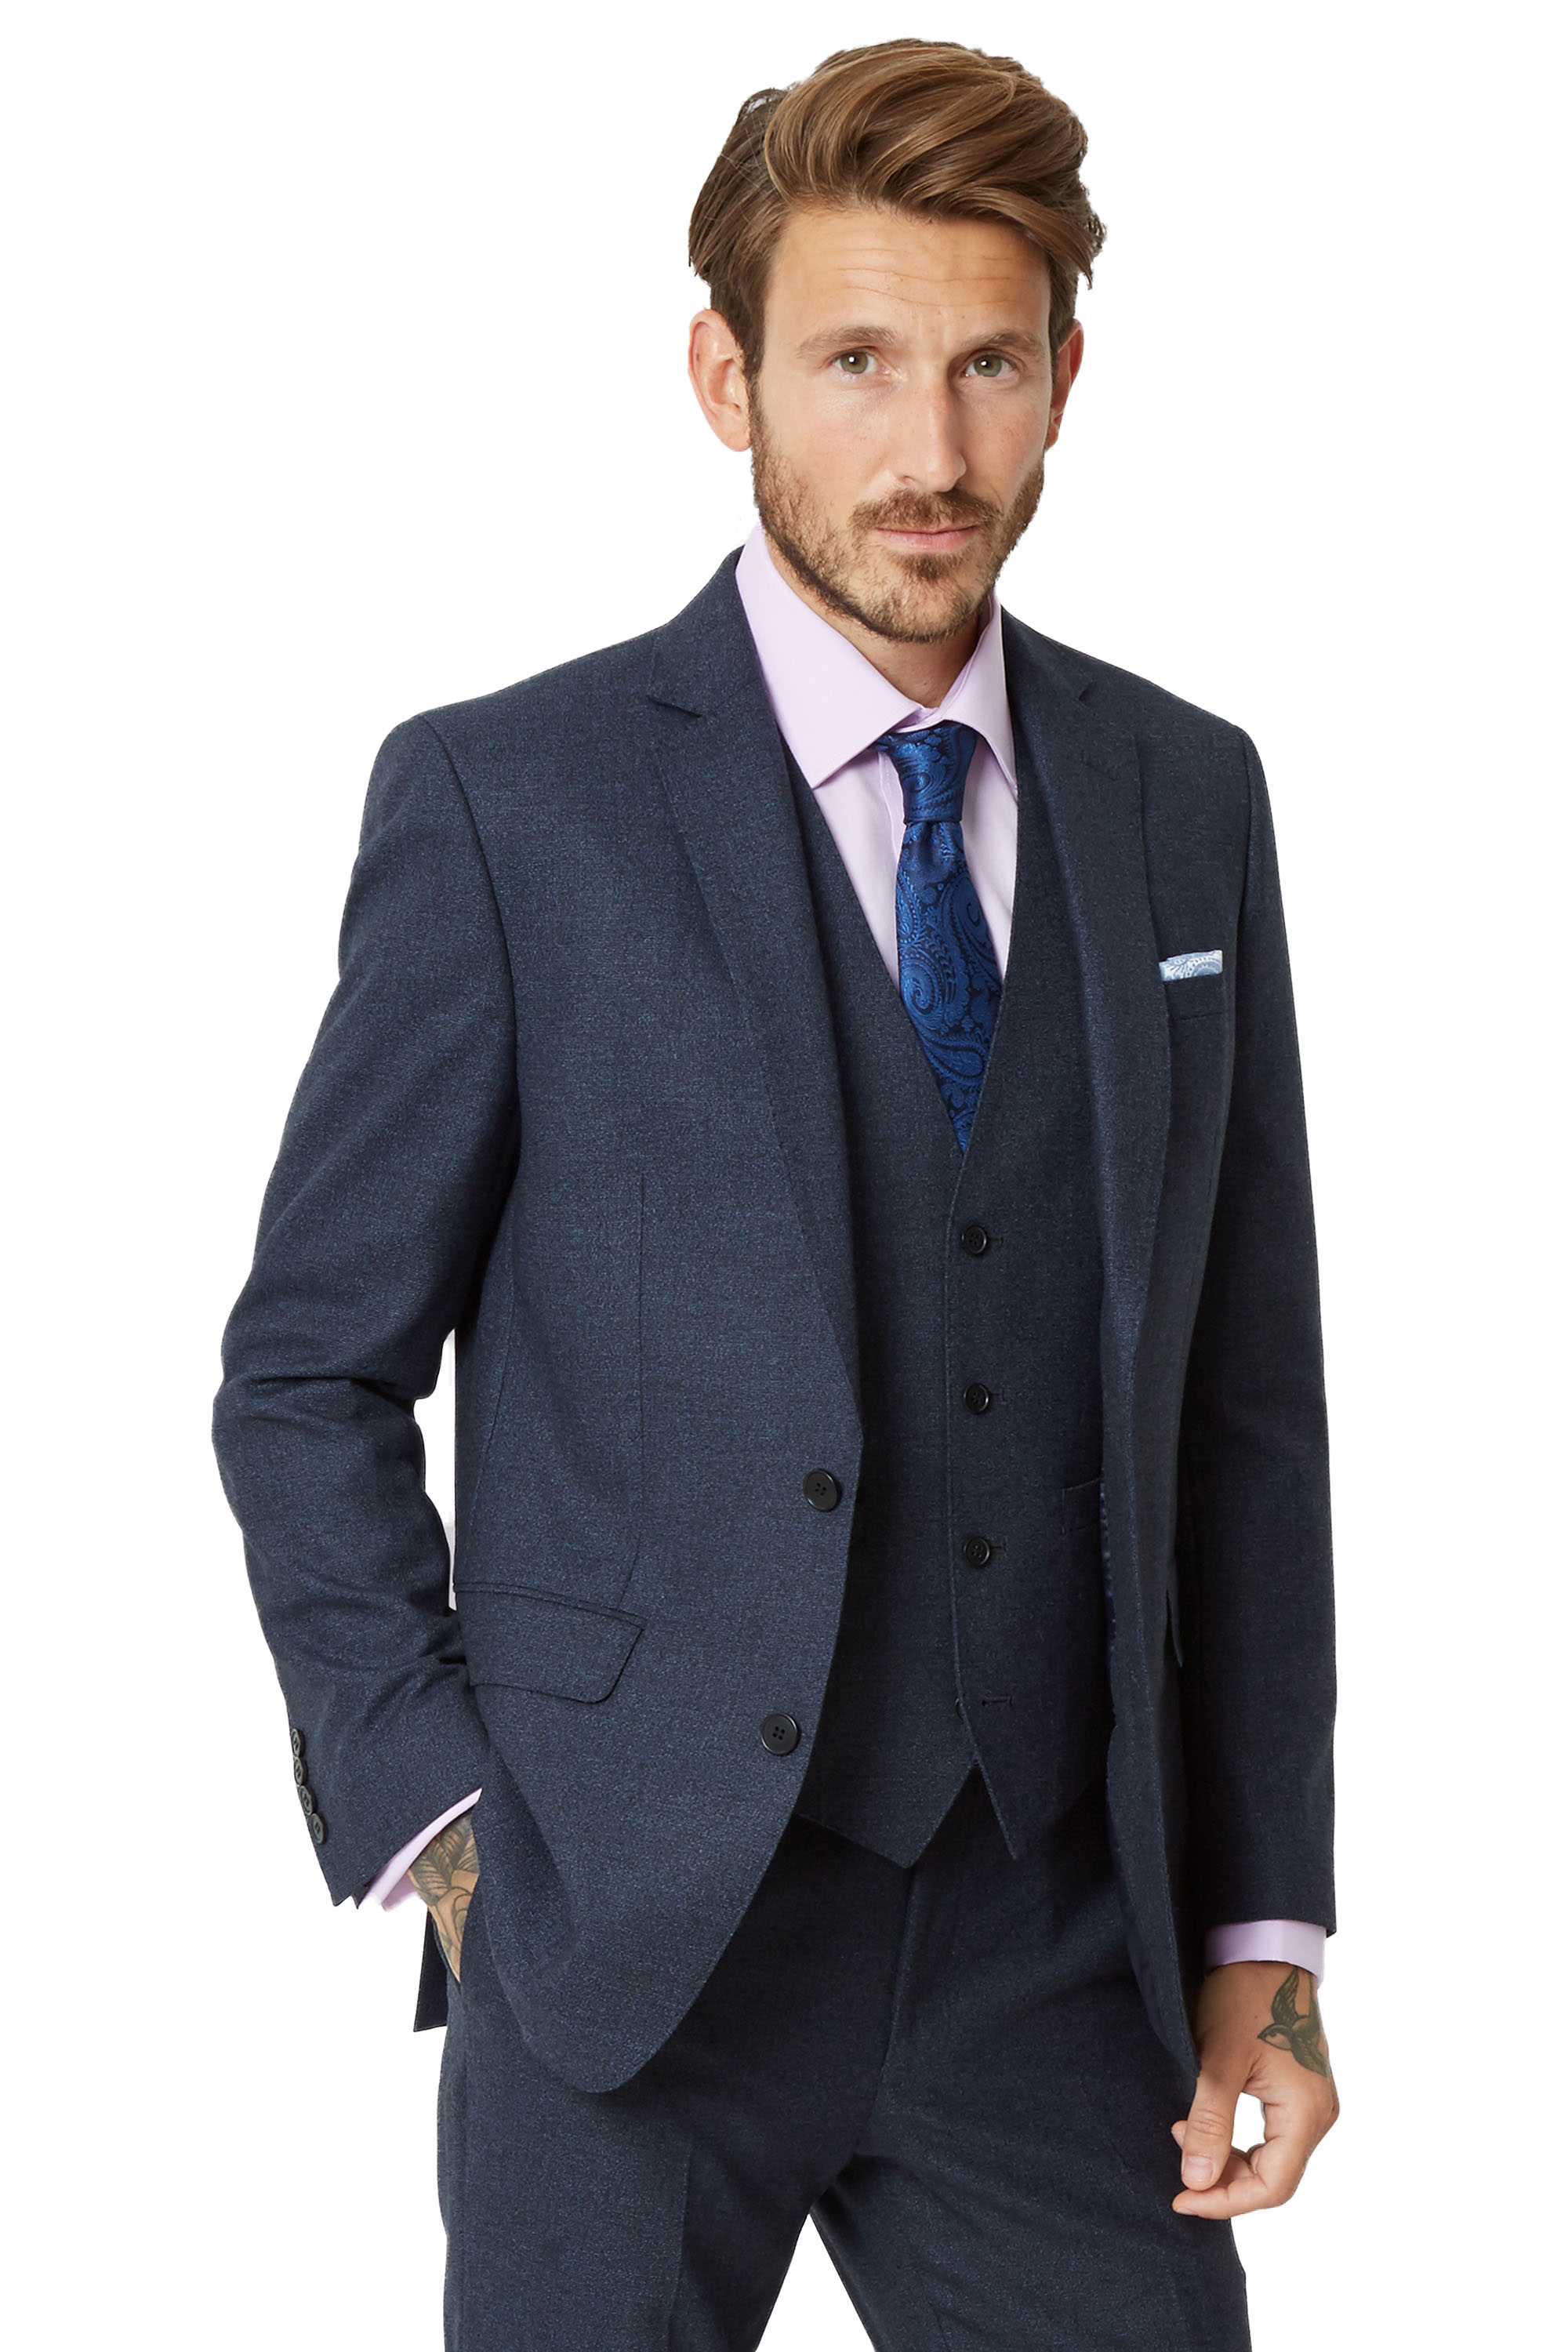 Moss 1851 Mens Ink Blue Suit Jacket Tailored Fit Textured Wool Two ...